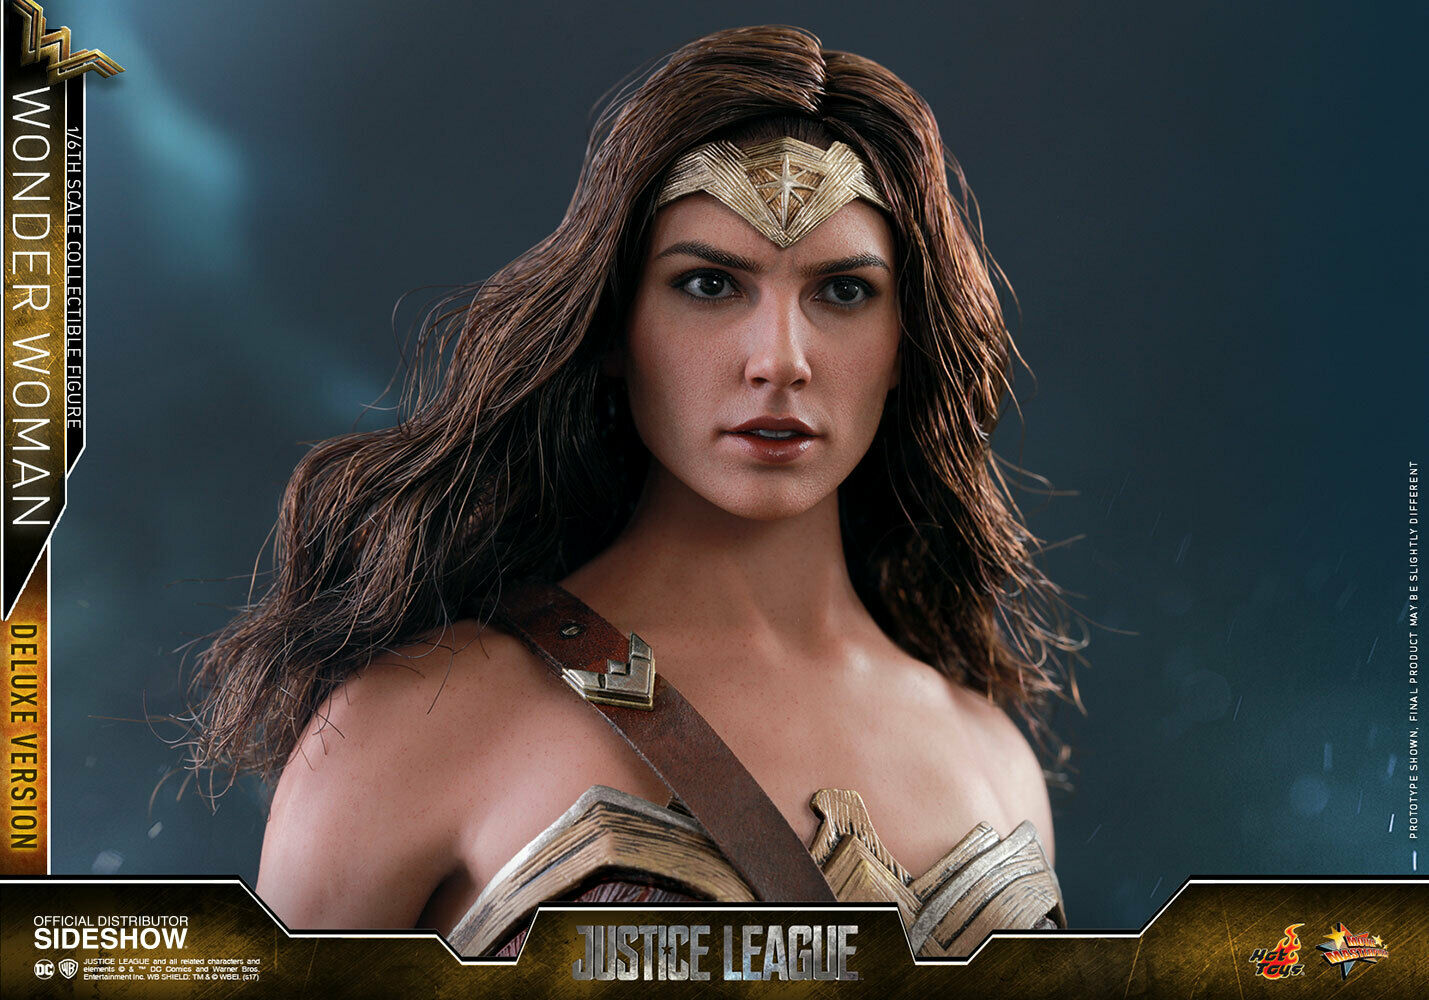 JUSTICE LEAGUEWONDER donnaDELUXESIXTH SCALE cifraMMS451caliente giocattoliMIBS   vendita di fama mondiale online